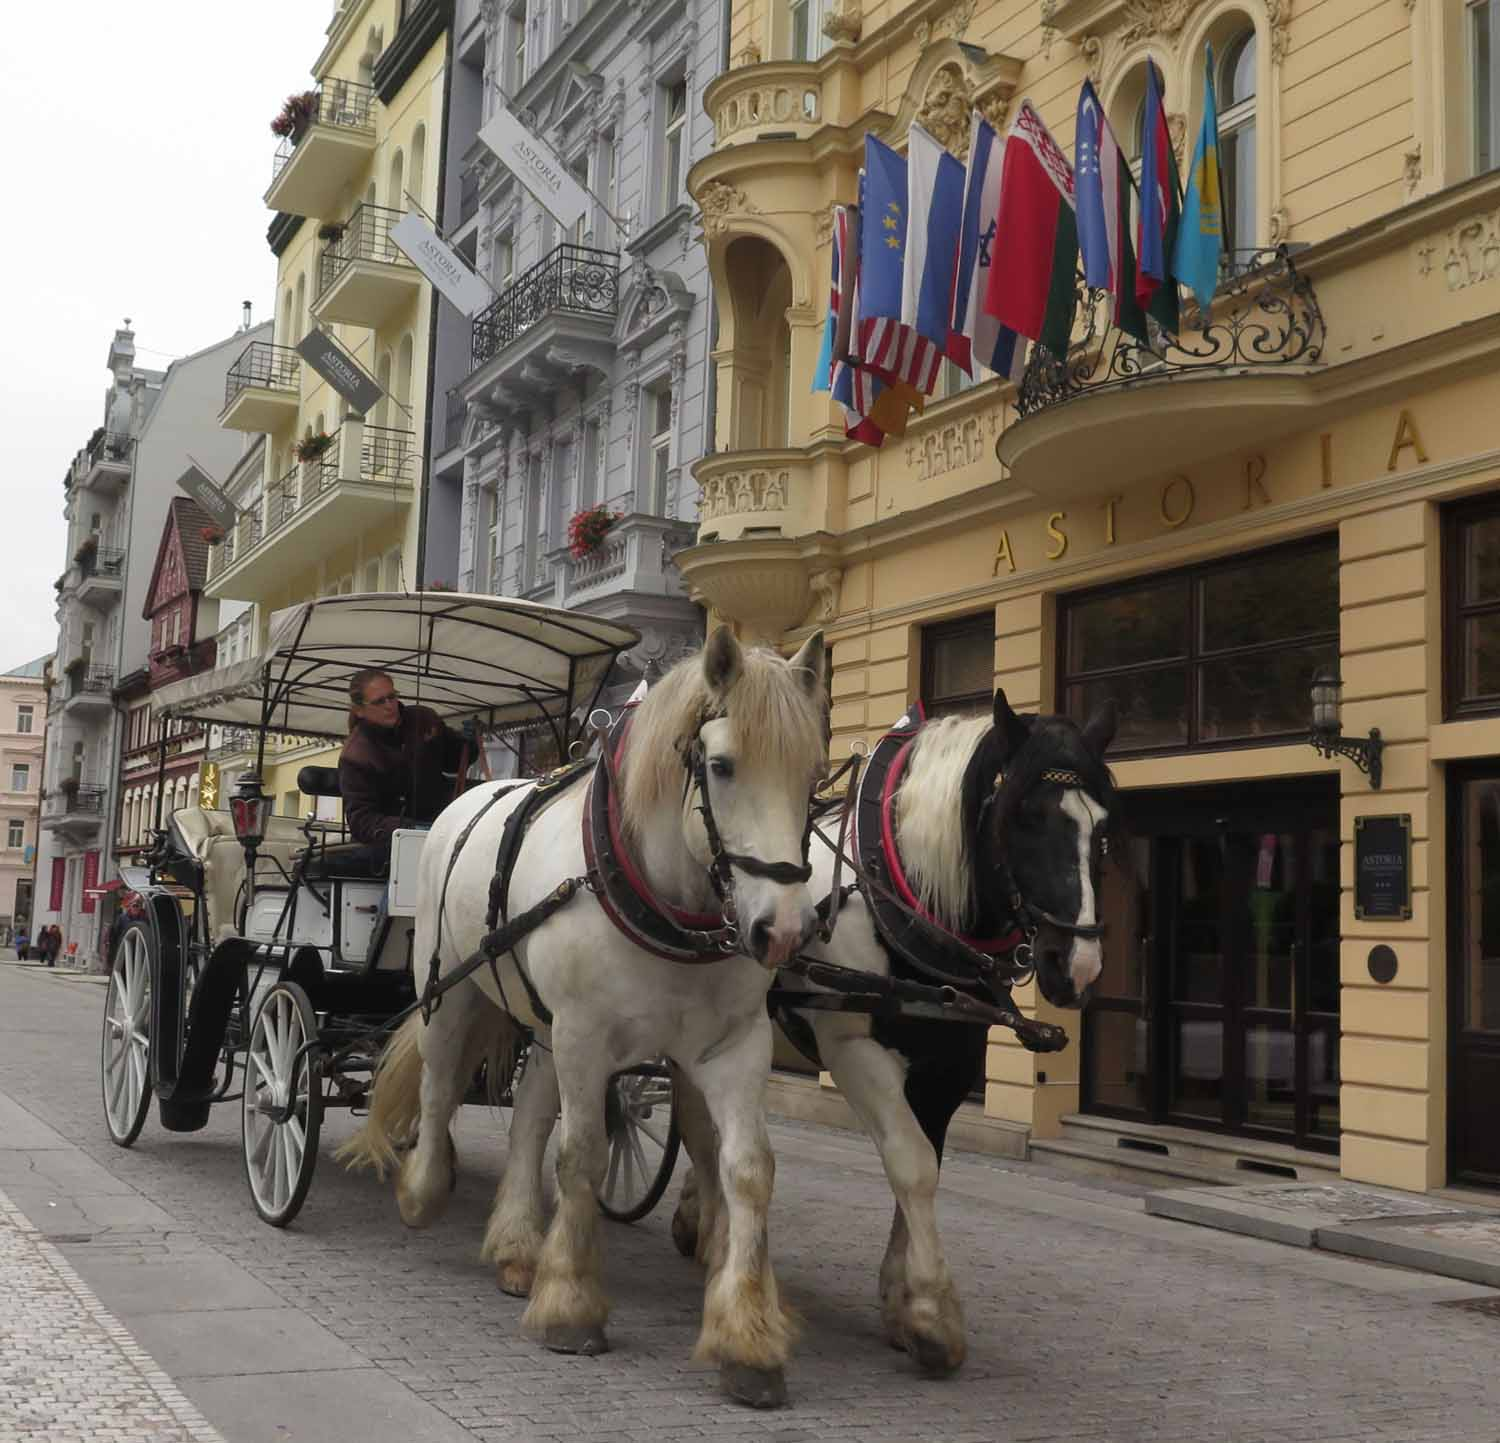 Czech-Republic-Karlovy-Vary-Horses-And-Carriage